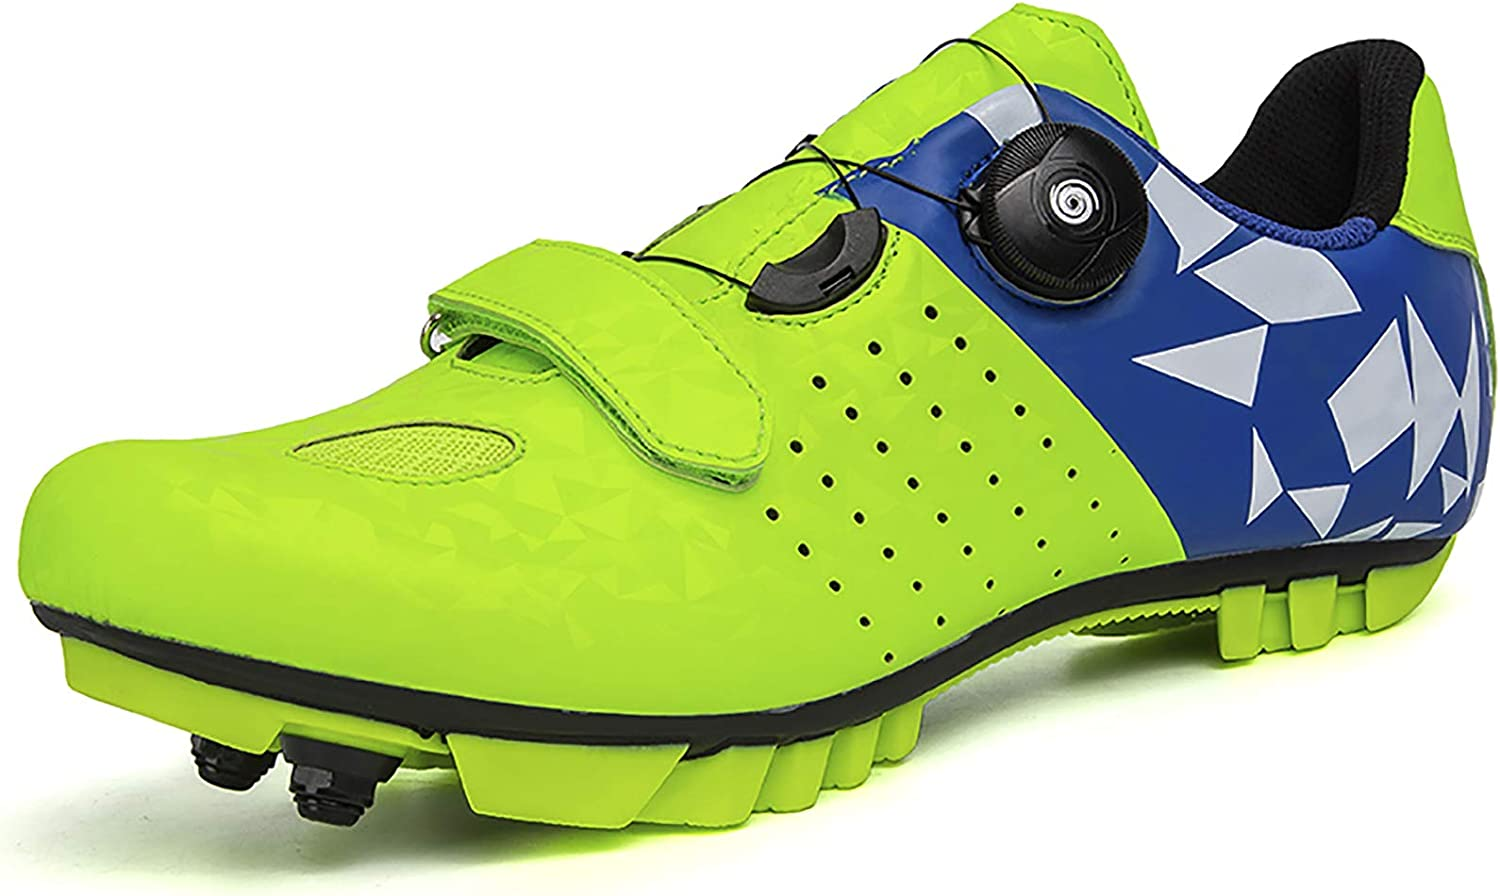 QAL Cycling Colorado Springs discount Mall Shoes for Men Women Shoe Riding Road Rotating Buckle